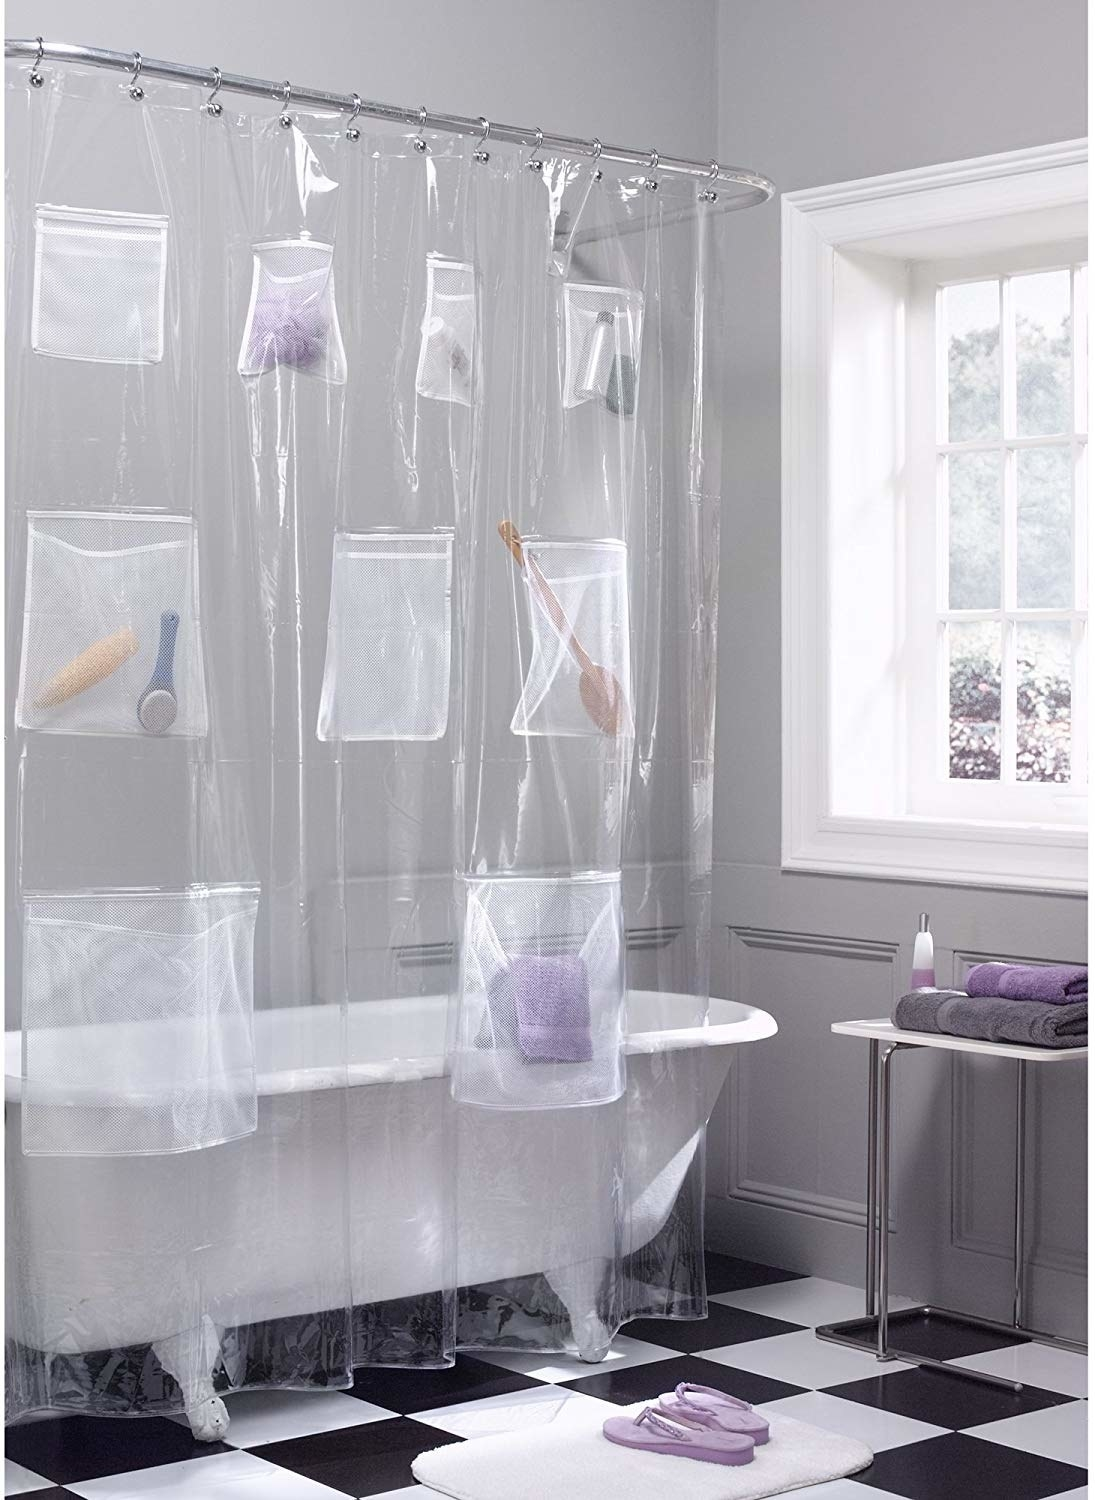 clear shower curtain with eight pockets of various sizes and items in them